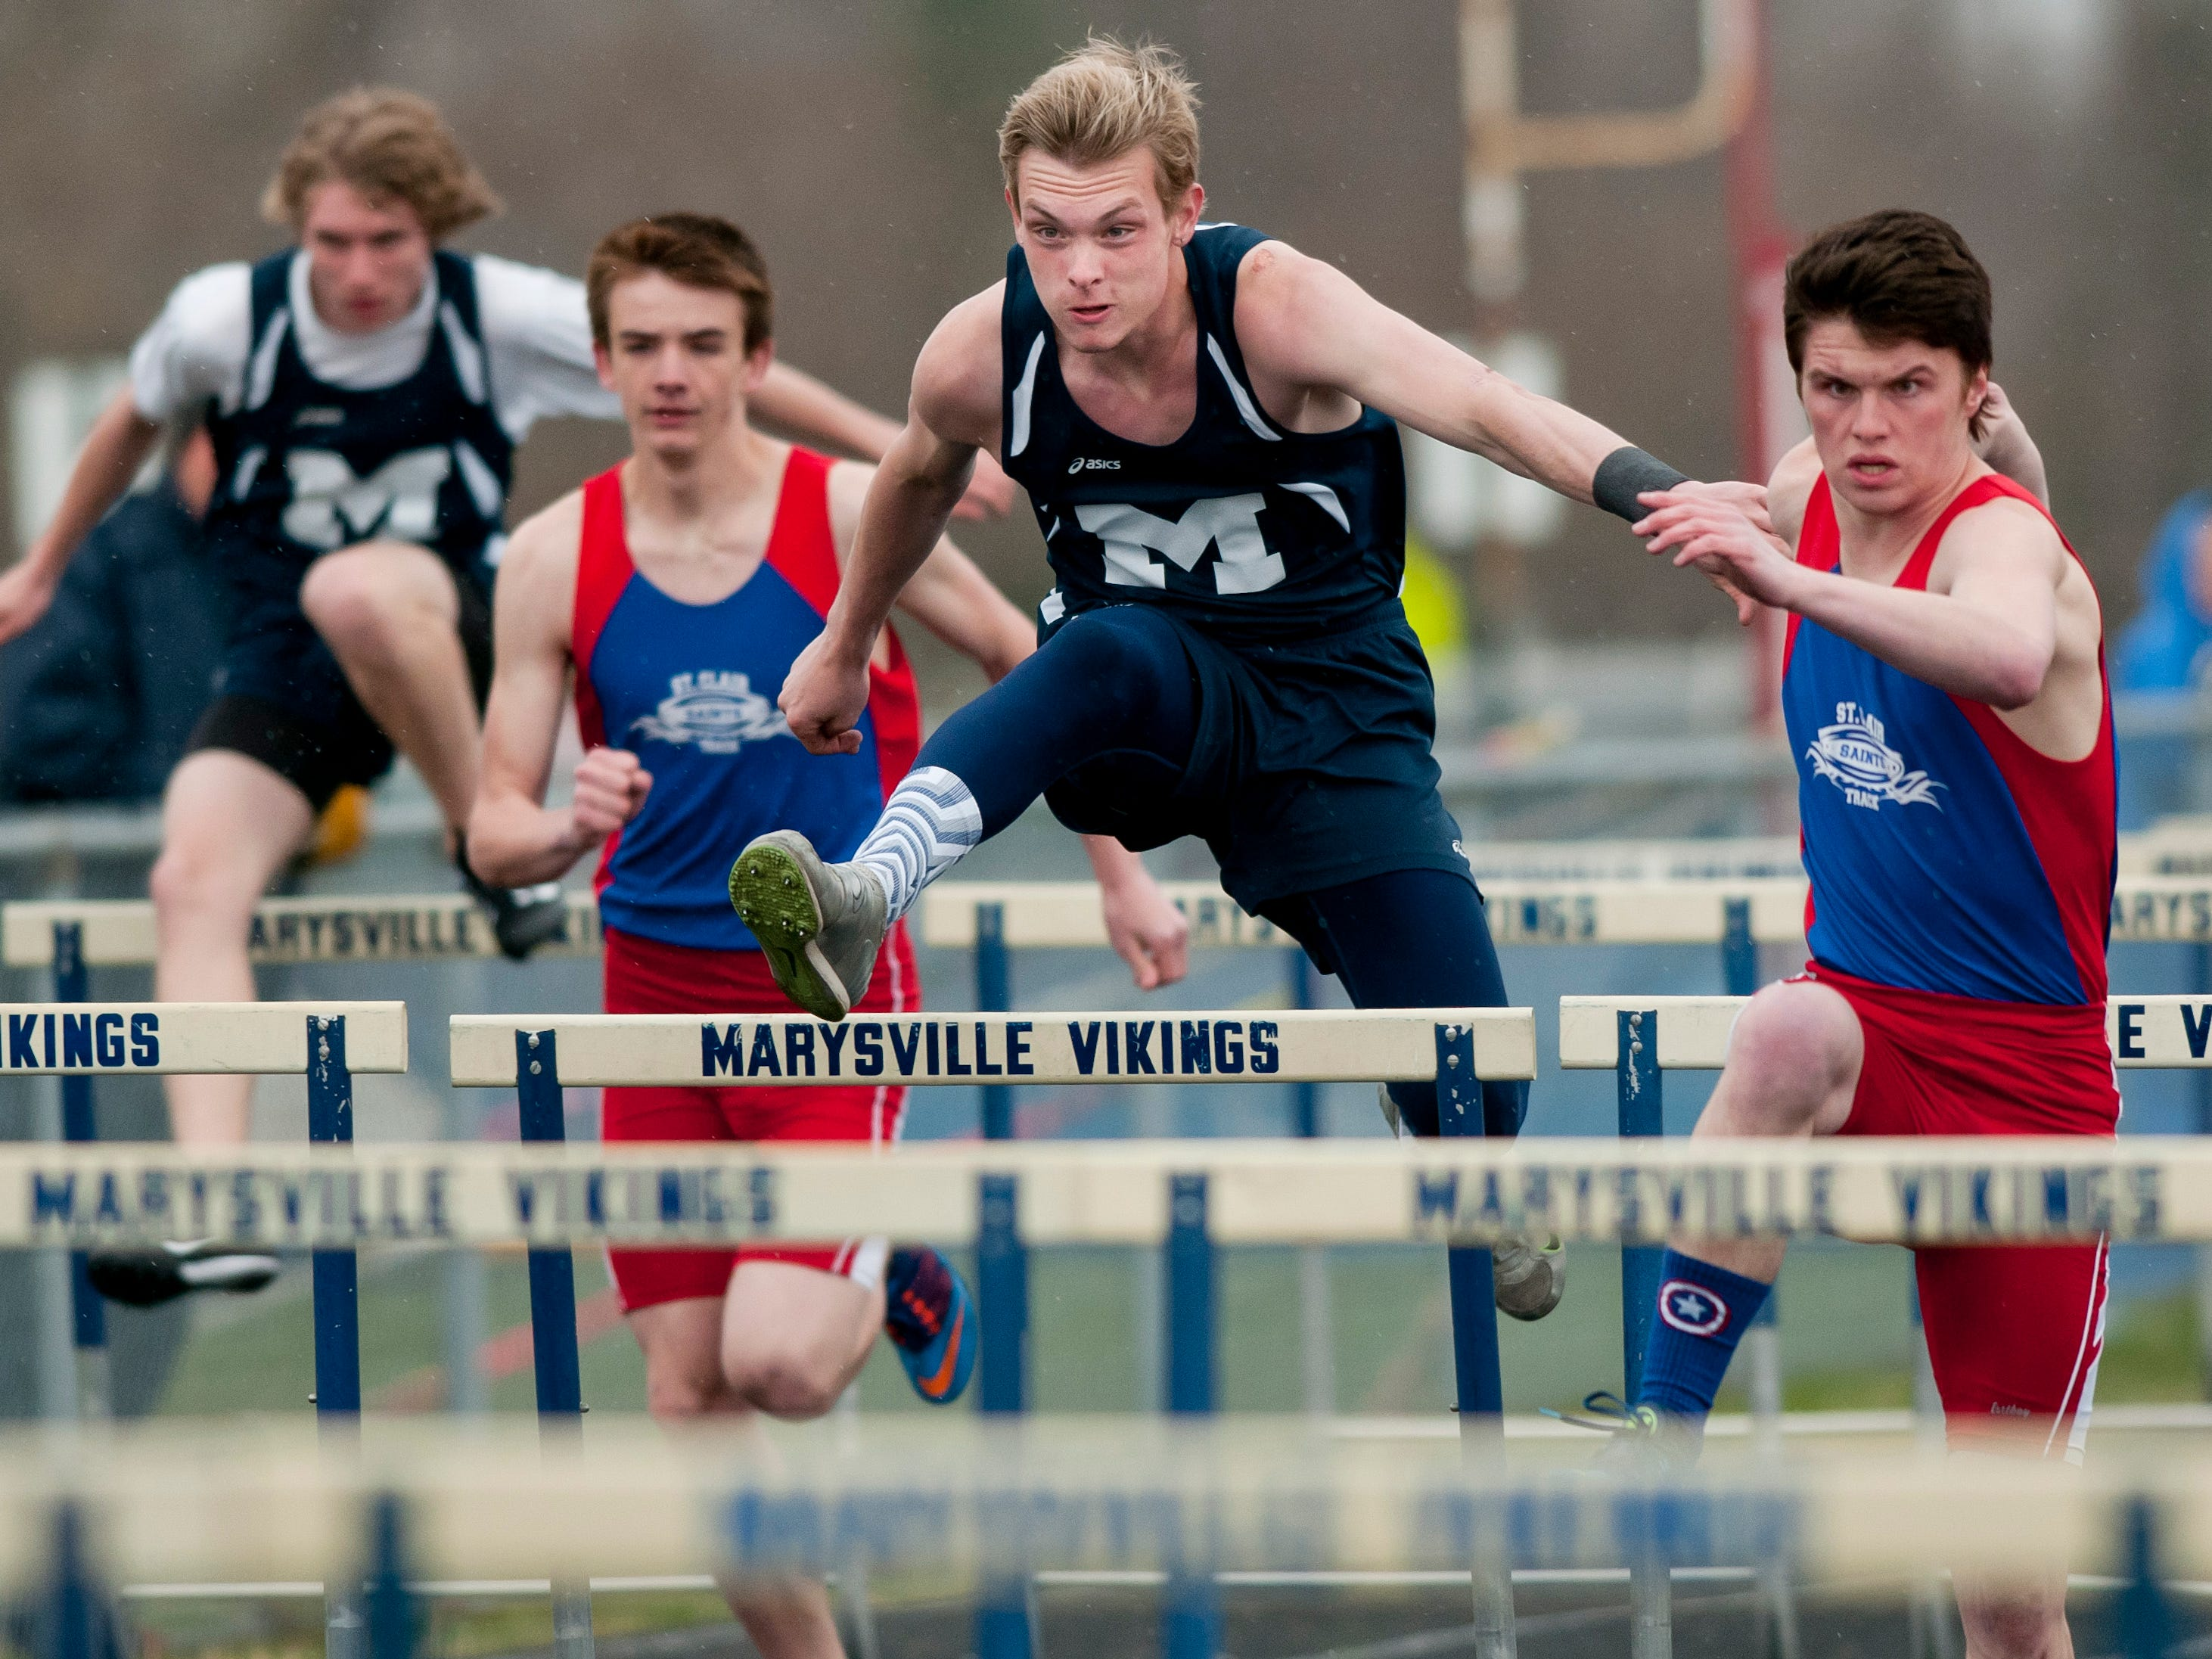 Marysville junior Mike Rasnick and St. Clair senior Nathan Roberts compete in the hurdles during a track meet Thursday, April 30, 2015 at Marysville High School.